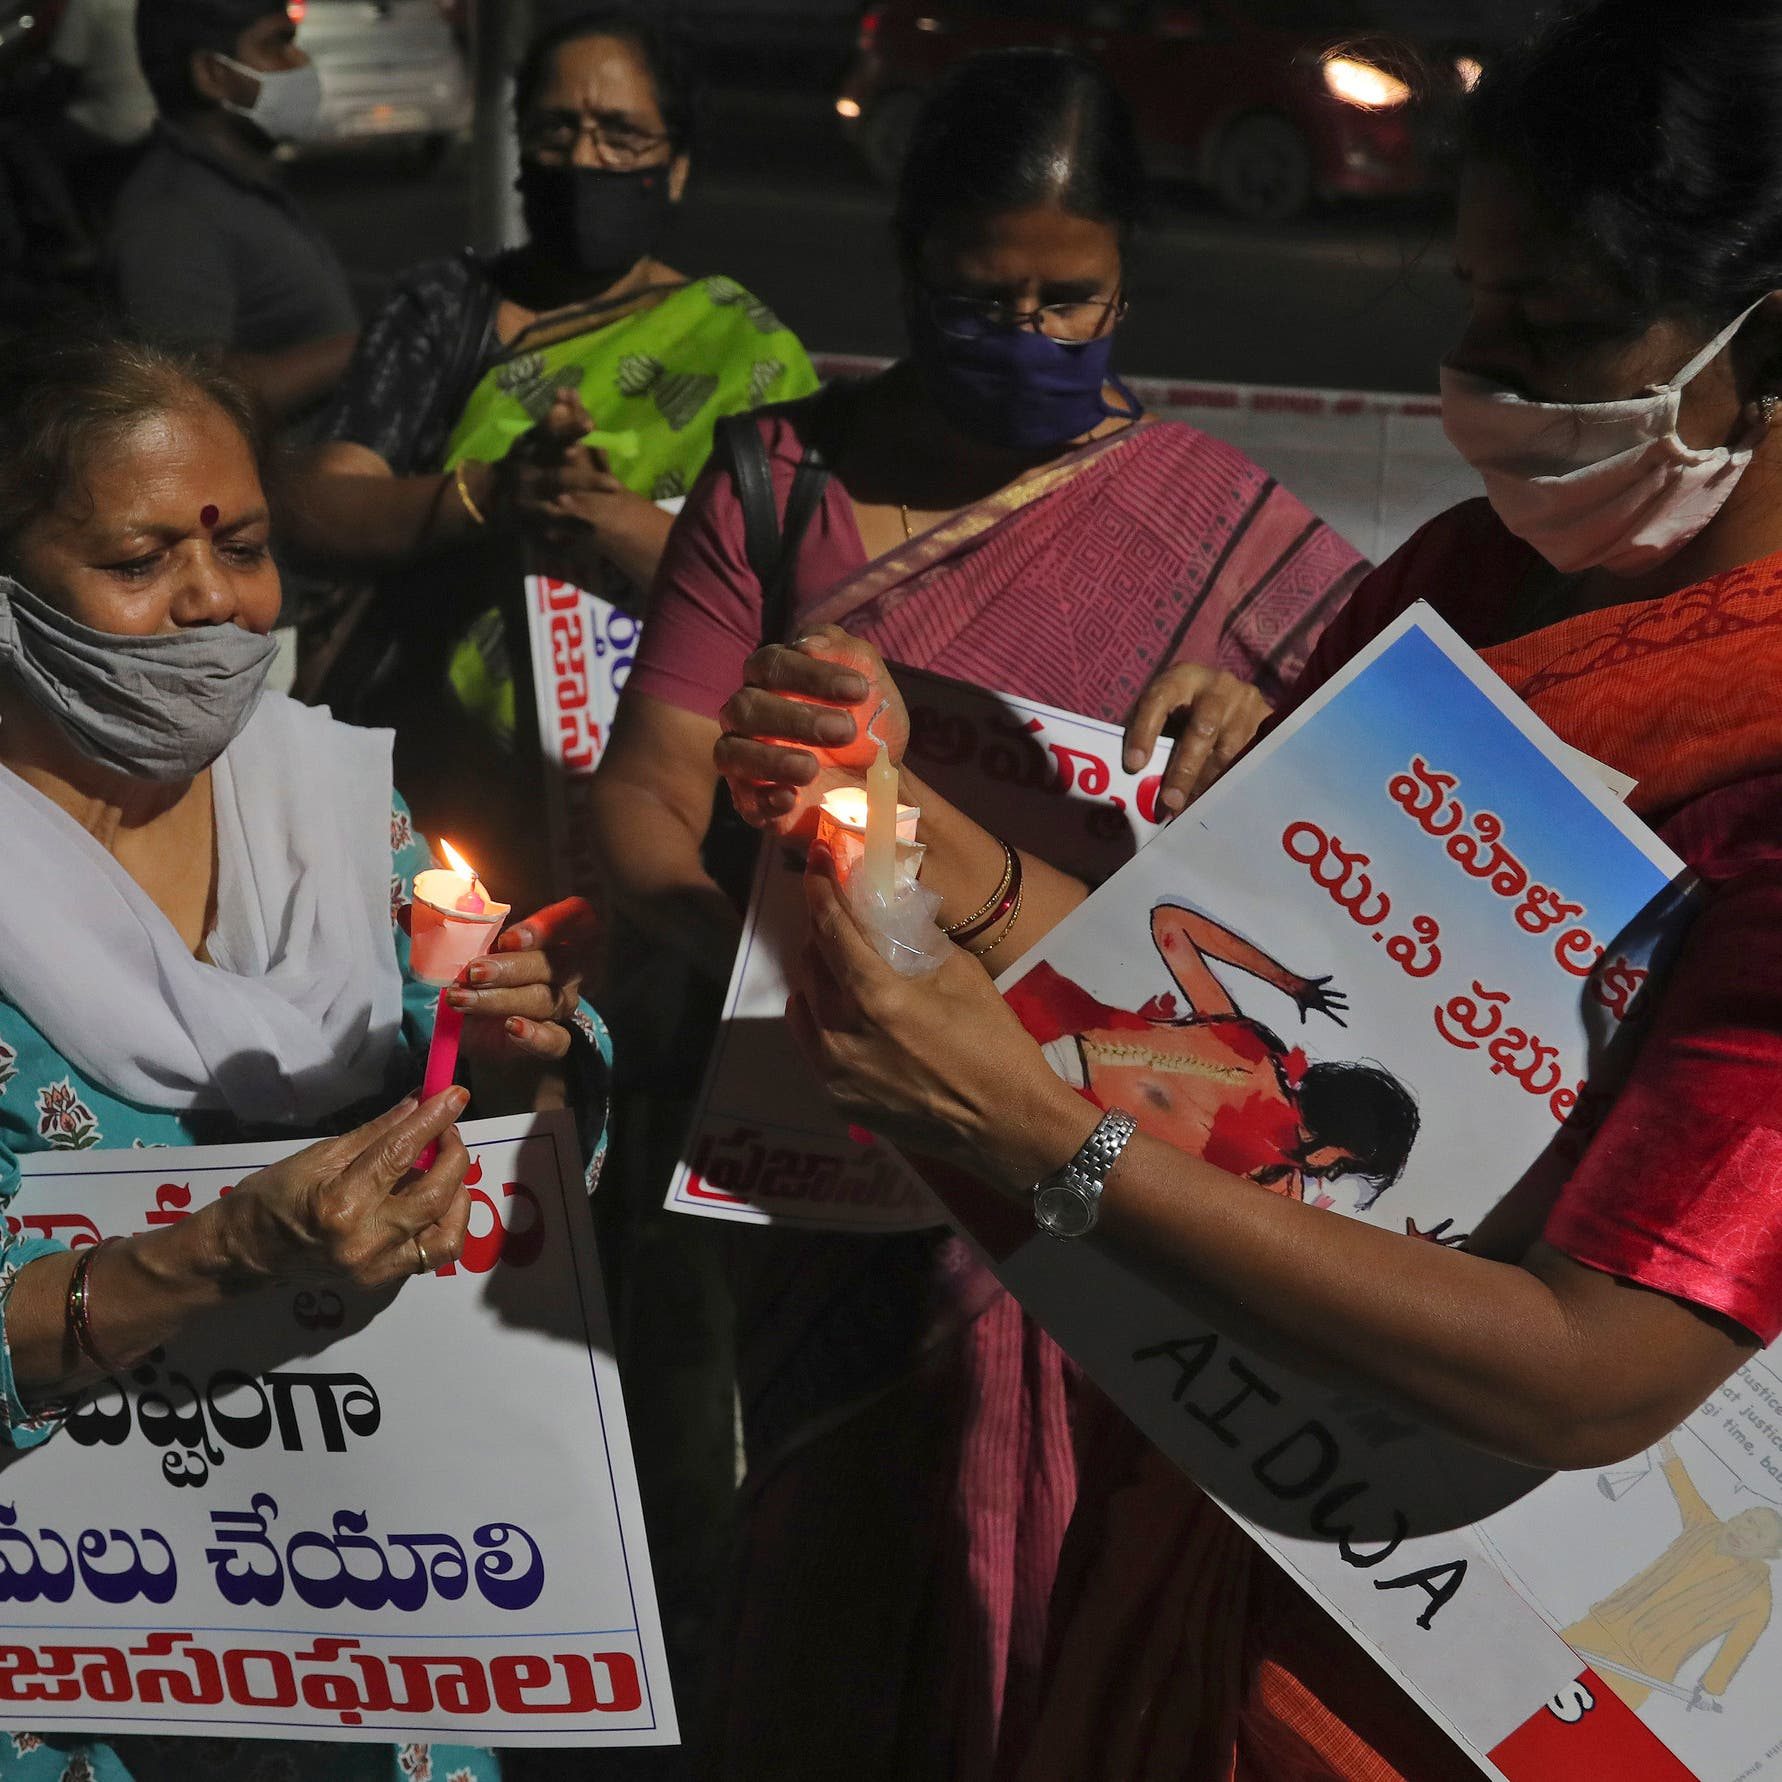 After nationwide outrage, India's federal authorities take over gang-rape probe